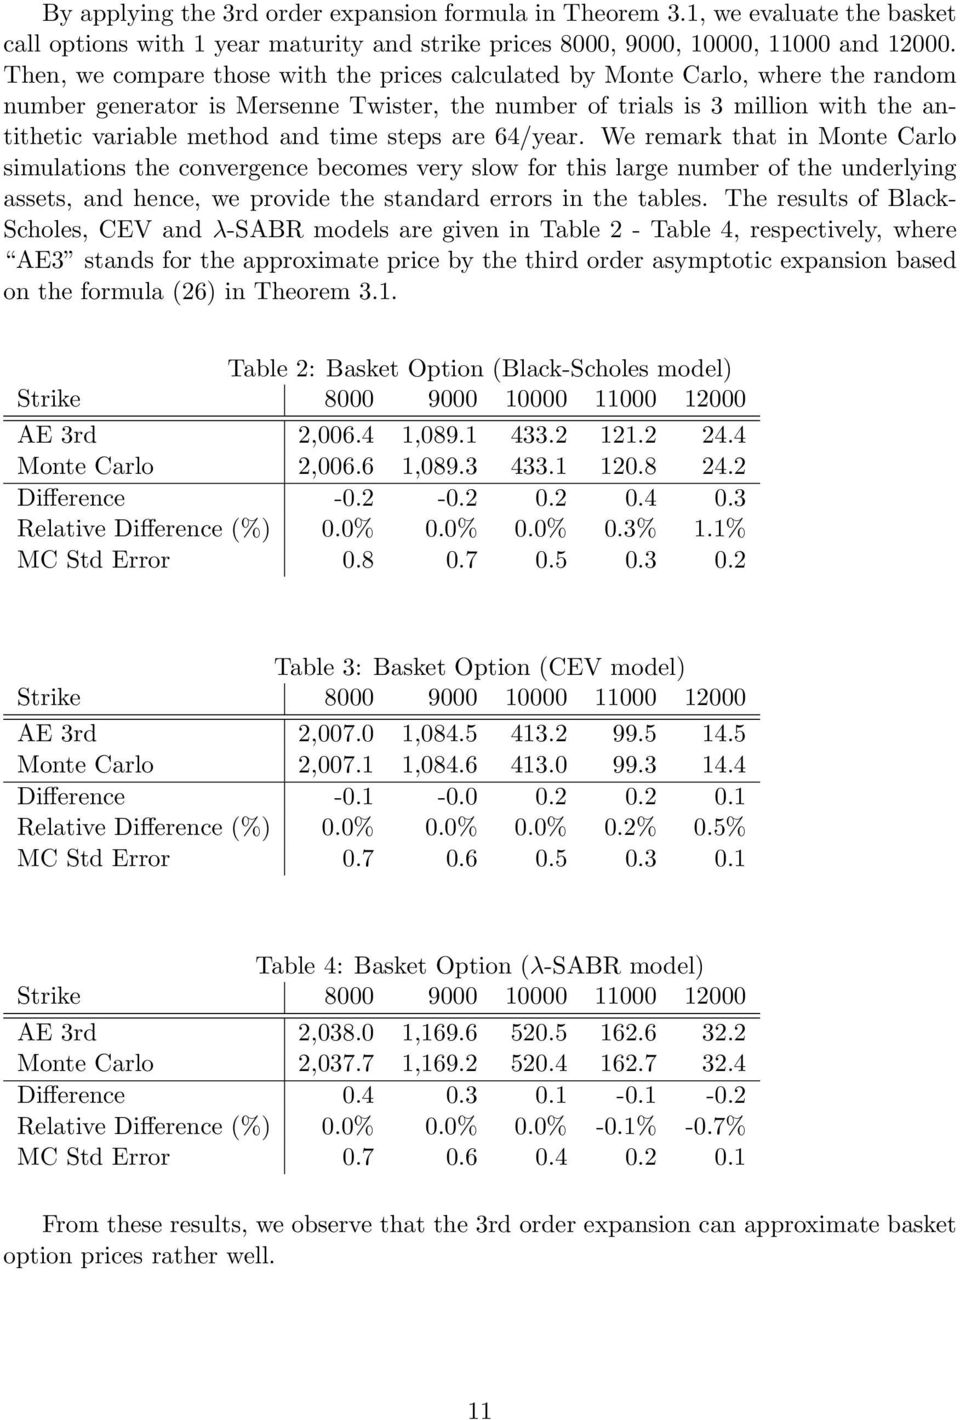 convergence becomes very slow for ths large number of the underlyng assets, and hence, we provde the standard errors n the tables The results of Black- Scholes, CEV and λ-sabr models are gven n Table